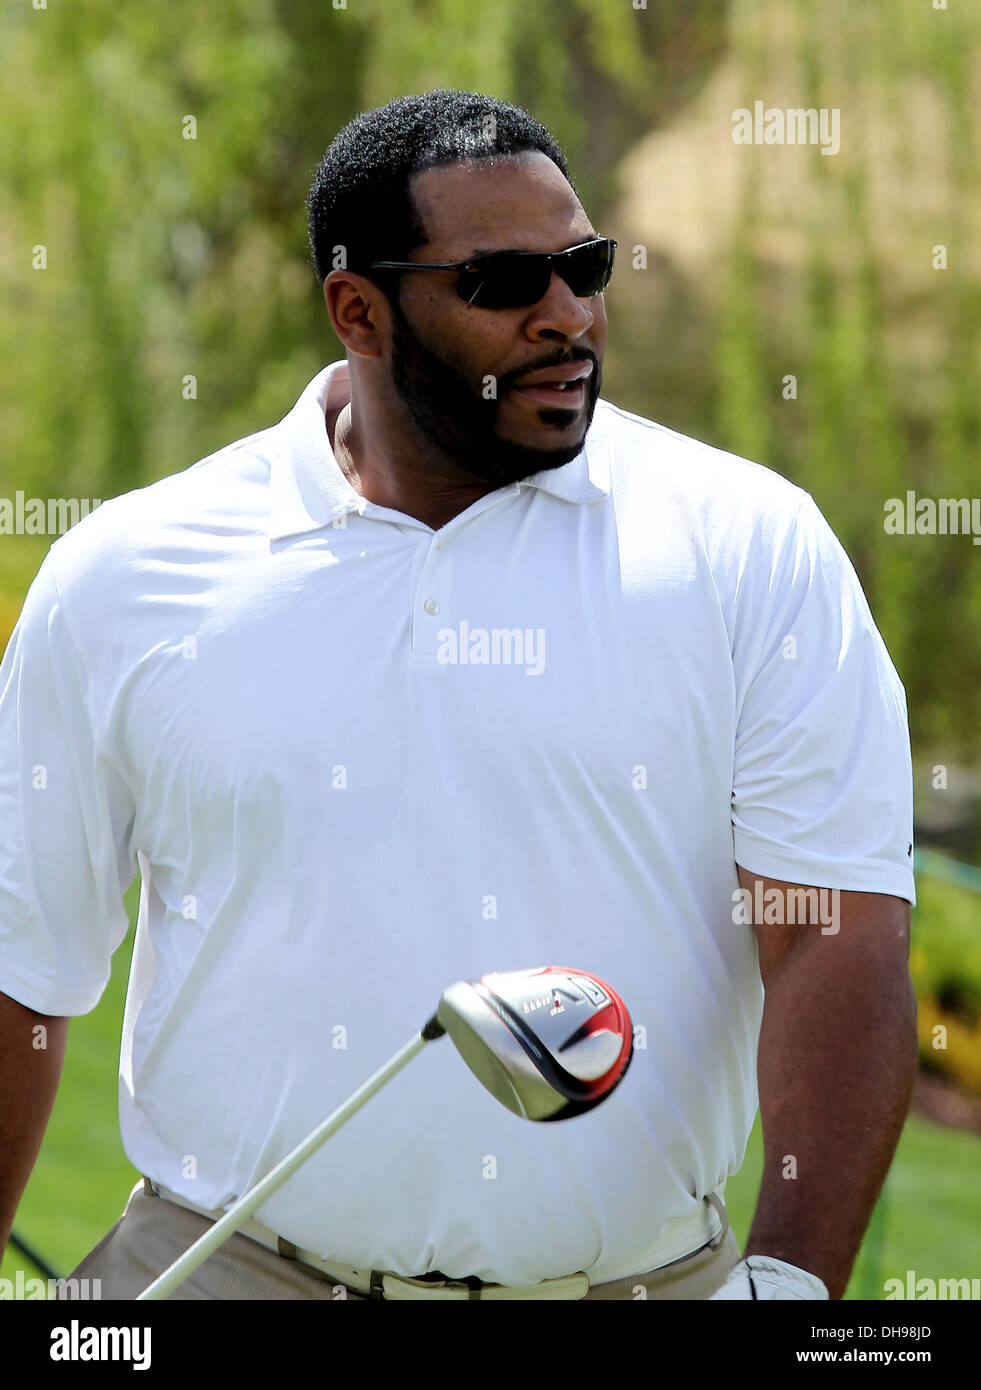 d245c948b98 Jerome Bettis 11th Annual Michael Jordan Celebrity Invitational Golf Event  hosted by Aria Resort   Casino and Shadow Creek Las